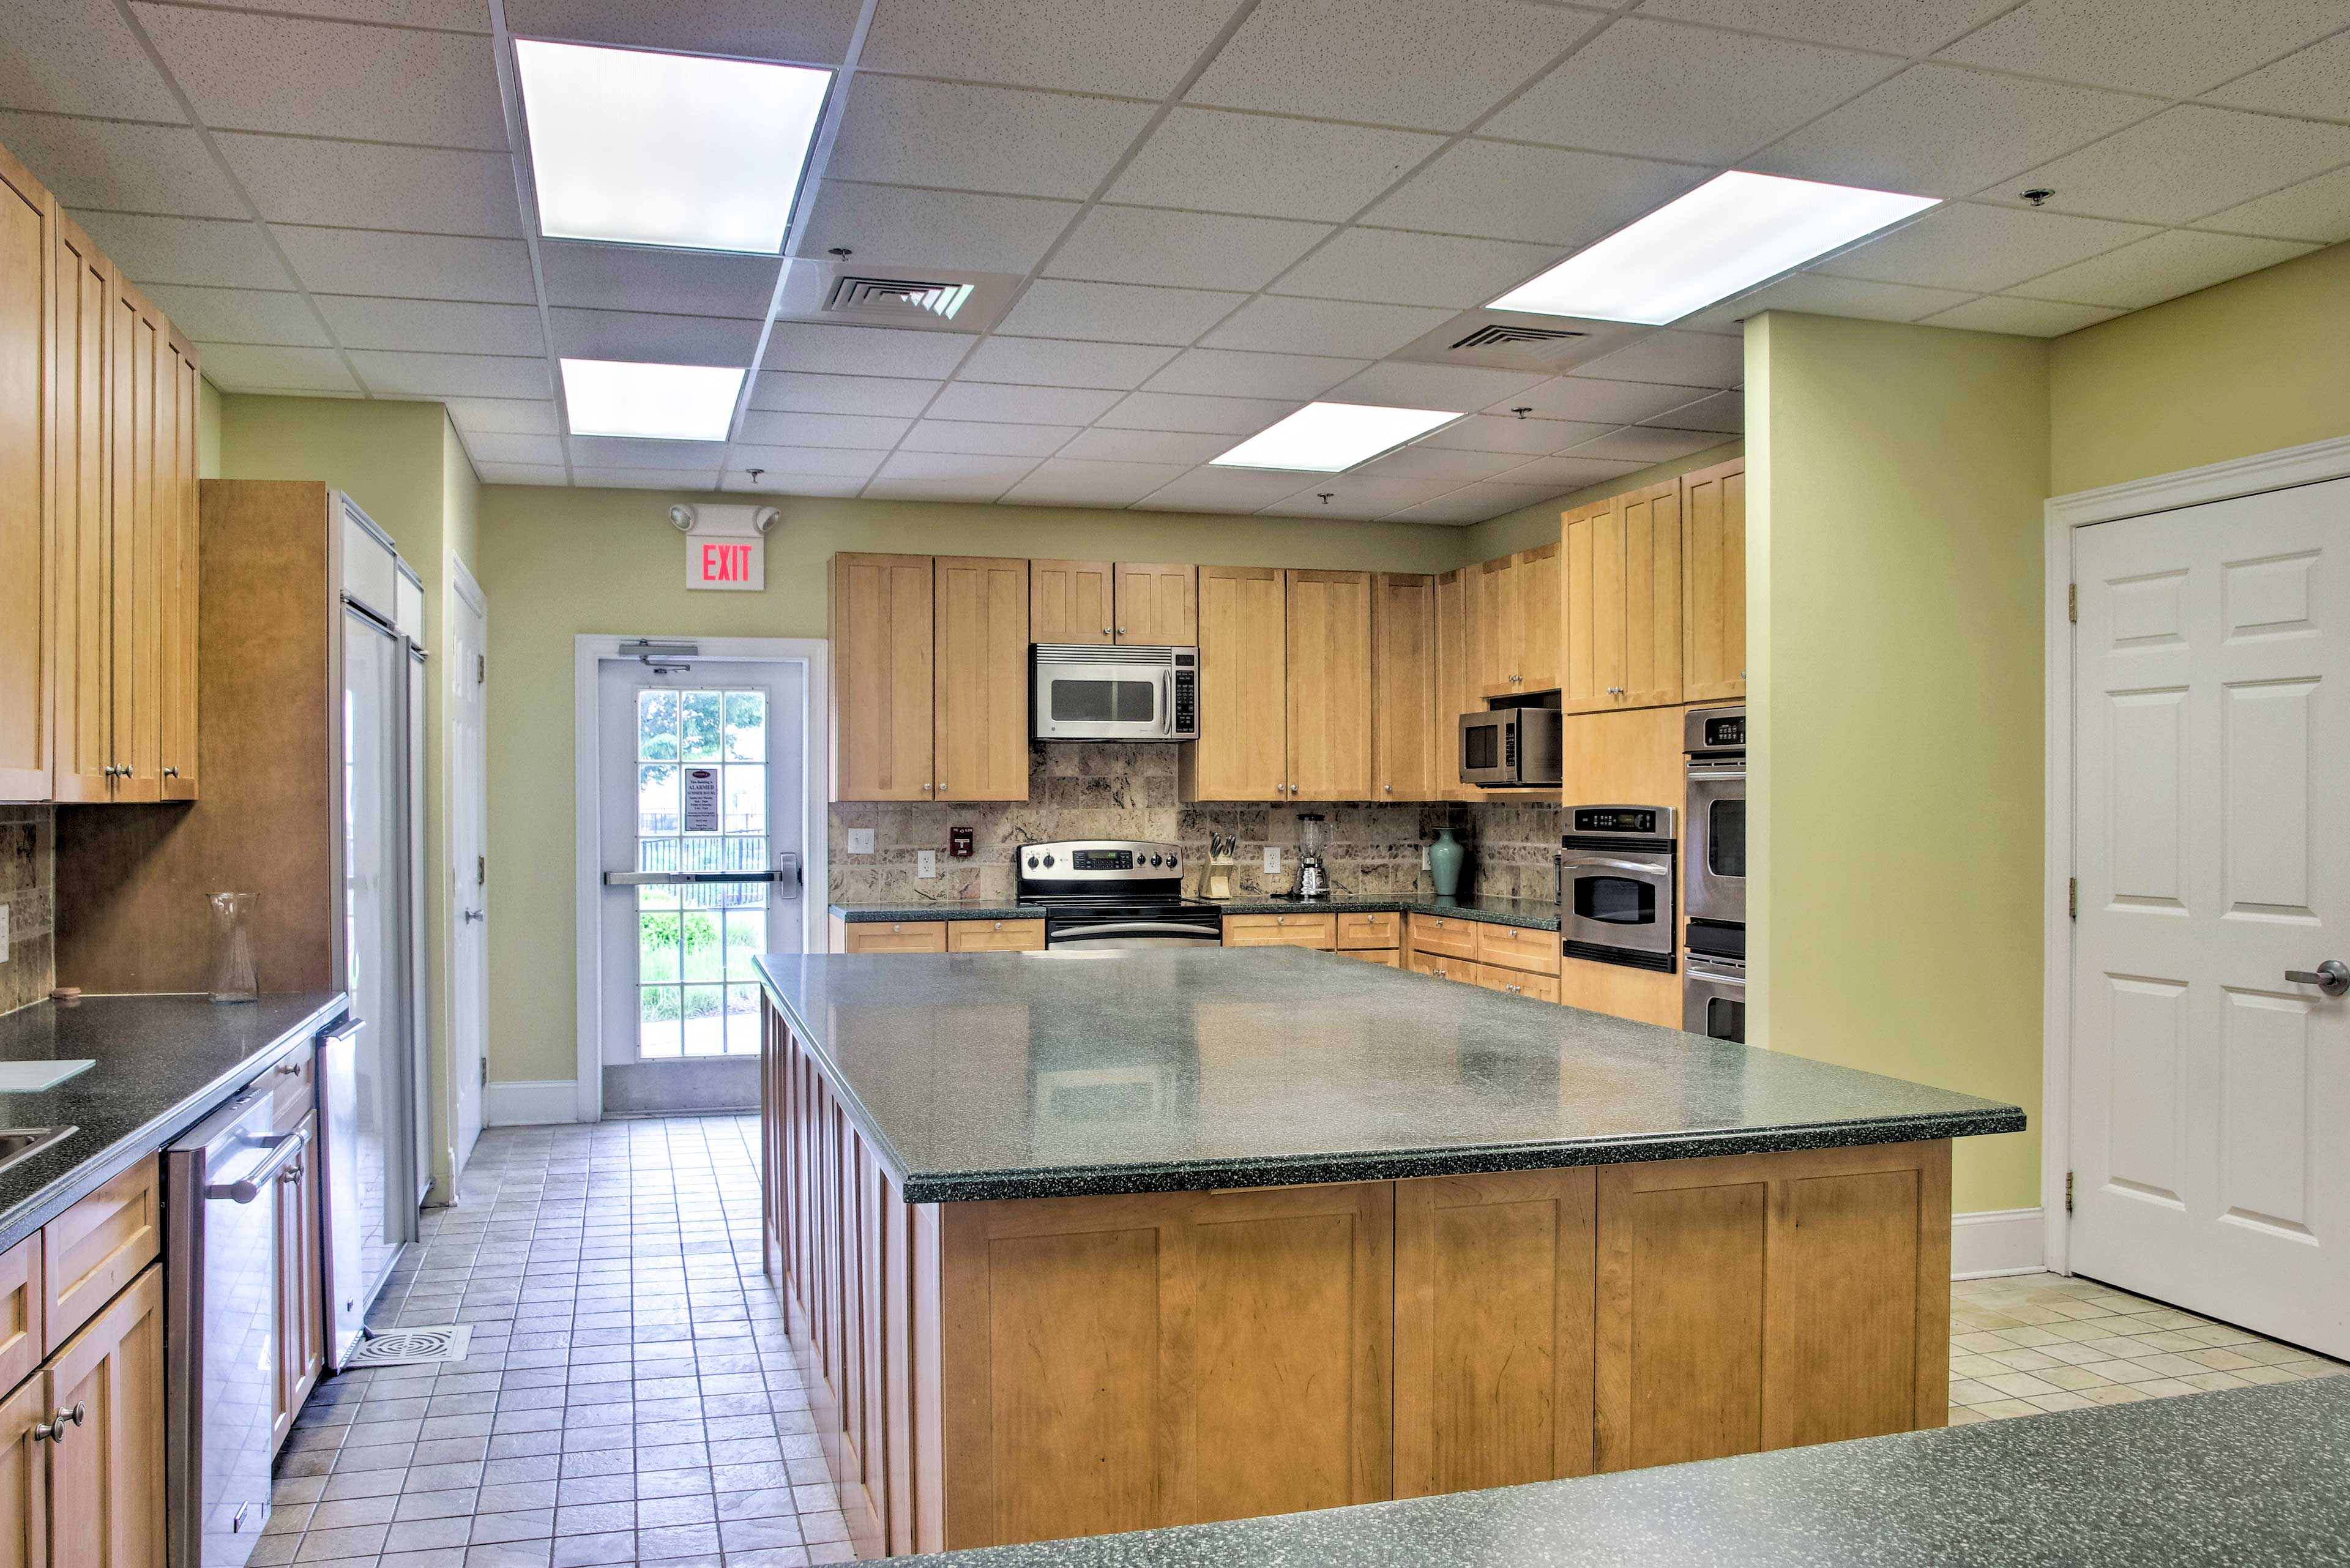 There's even a fully equipped community kitchen available for guest use.